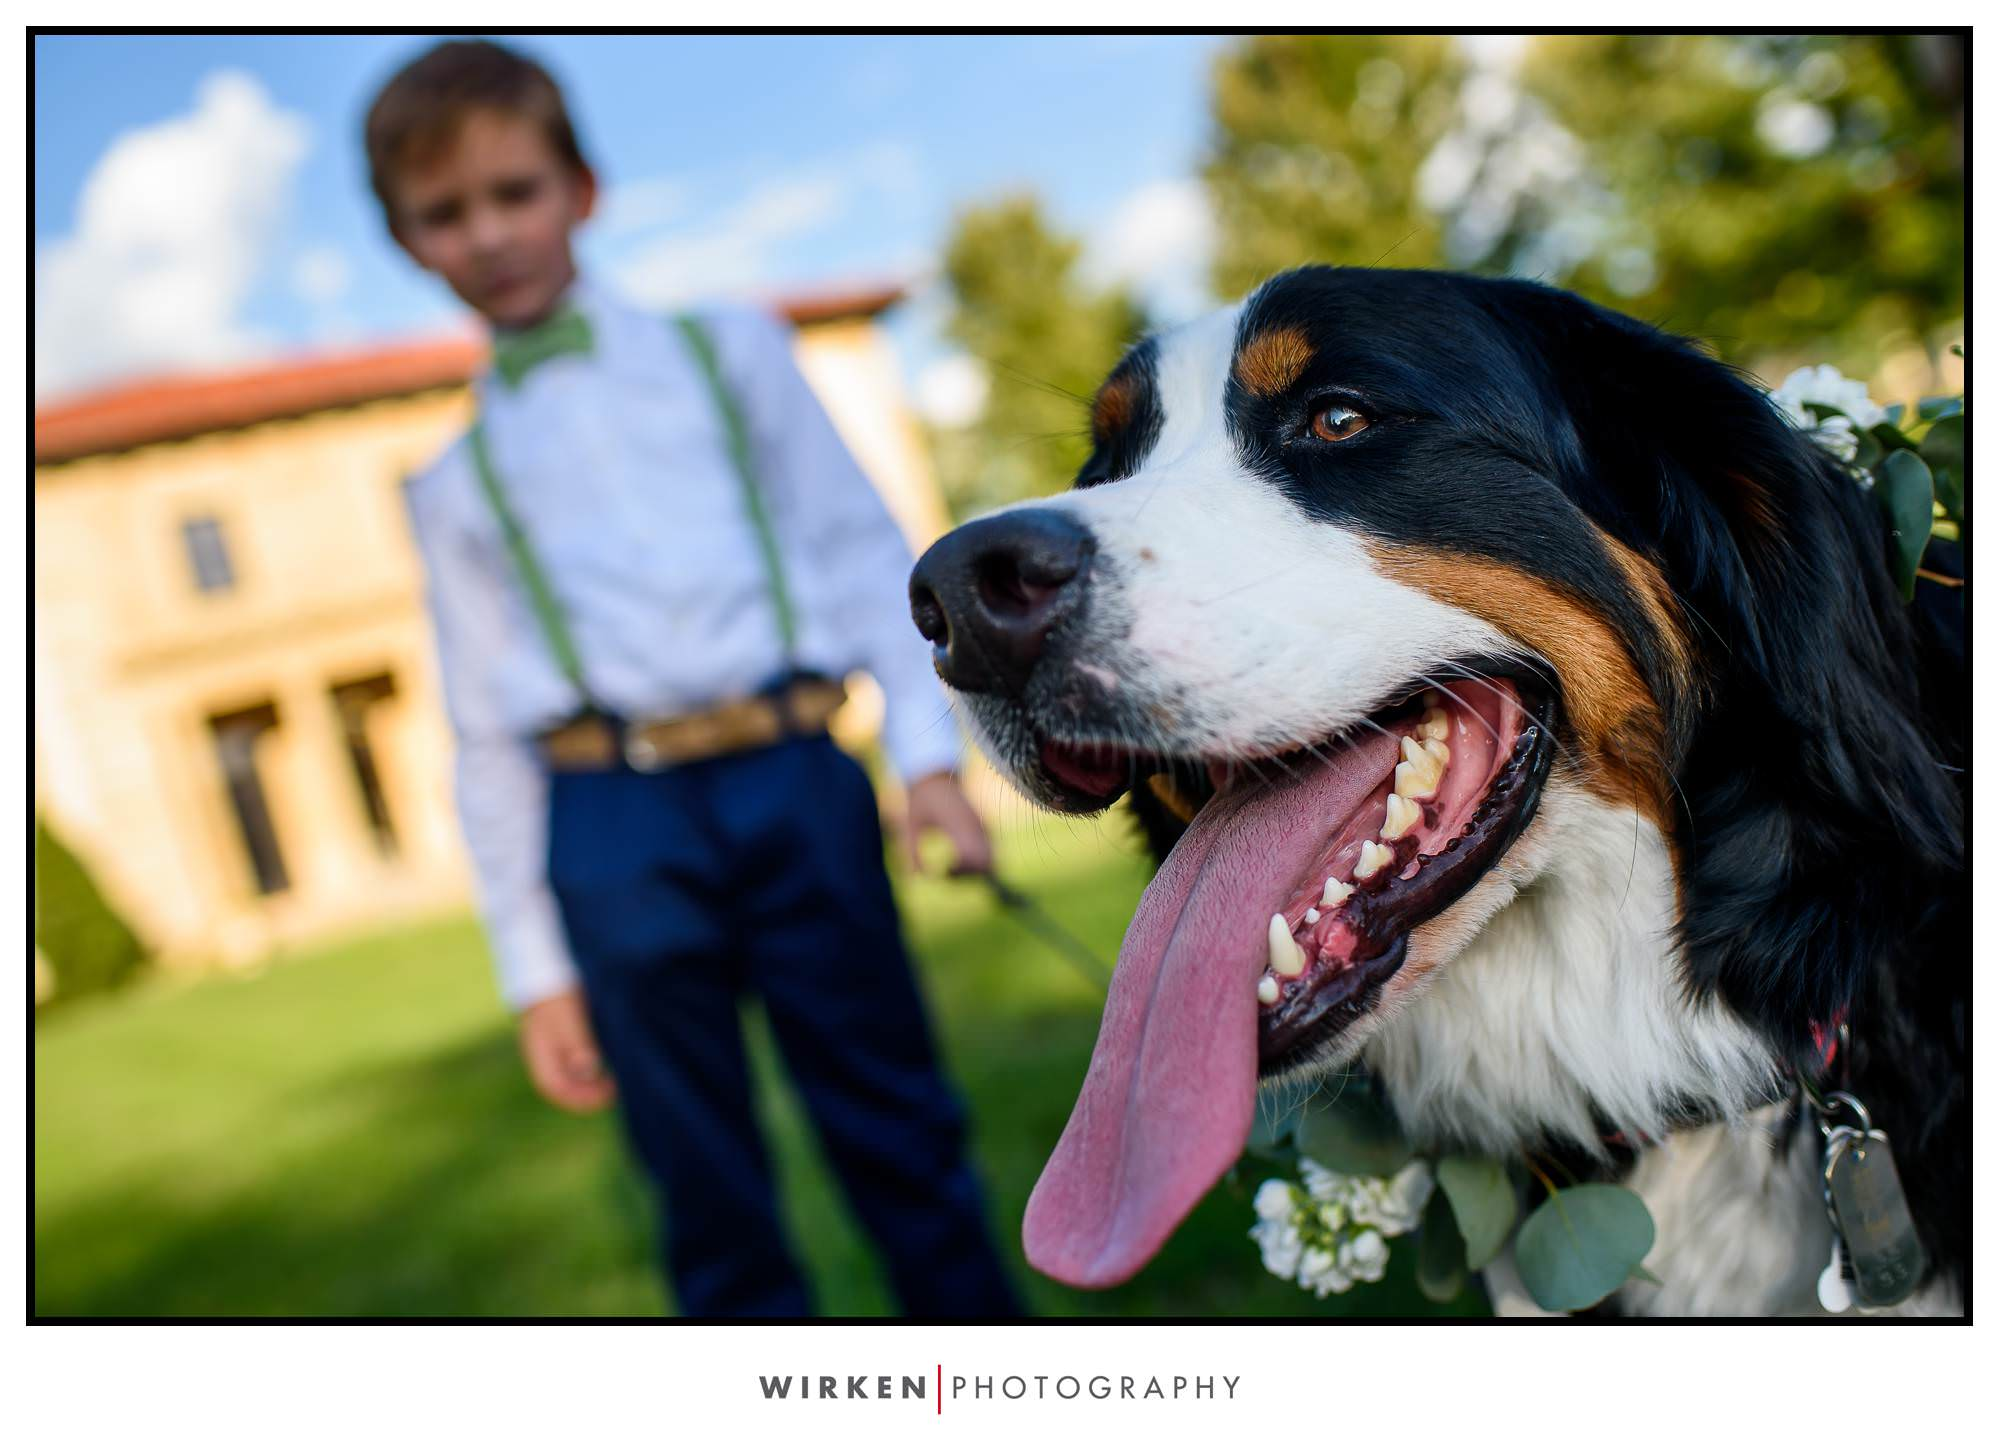 Cute dog at Unity Village wedding in Kansas City